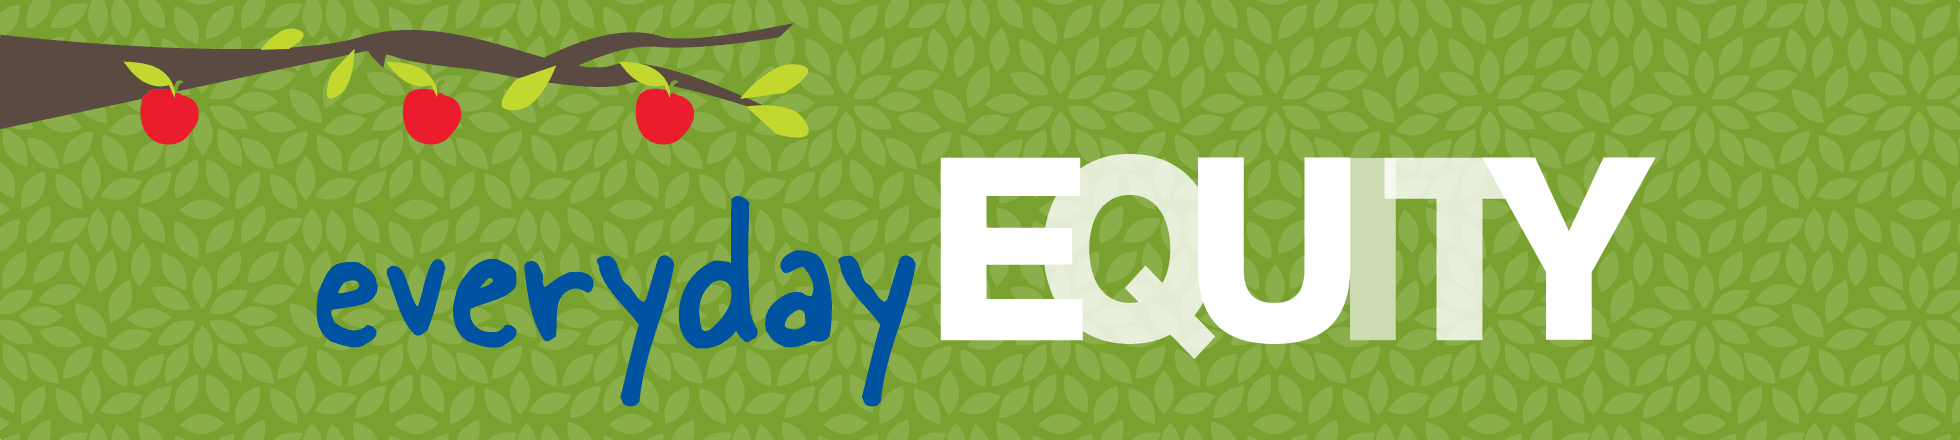 Everyday Equity banner